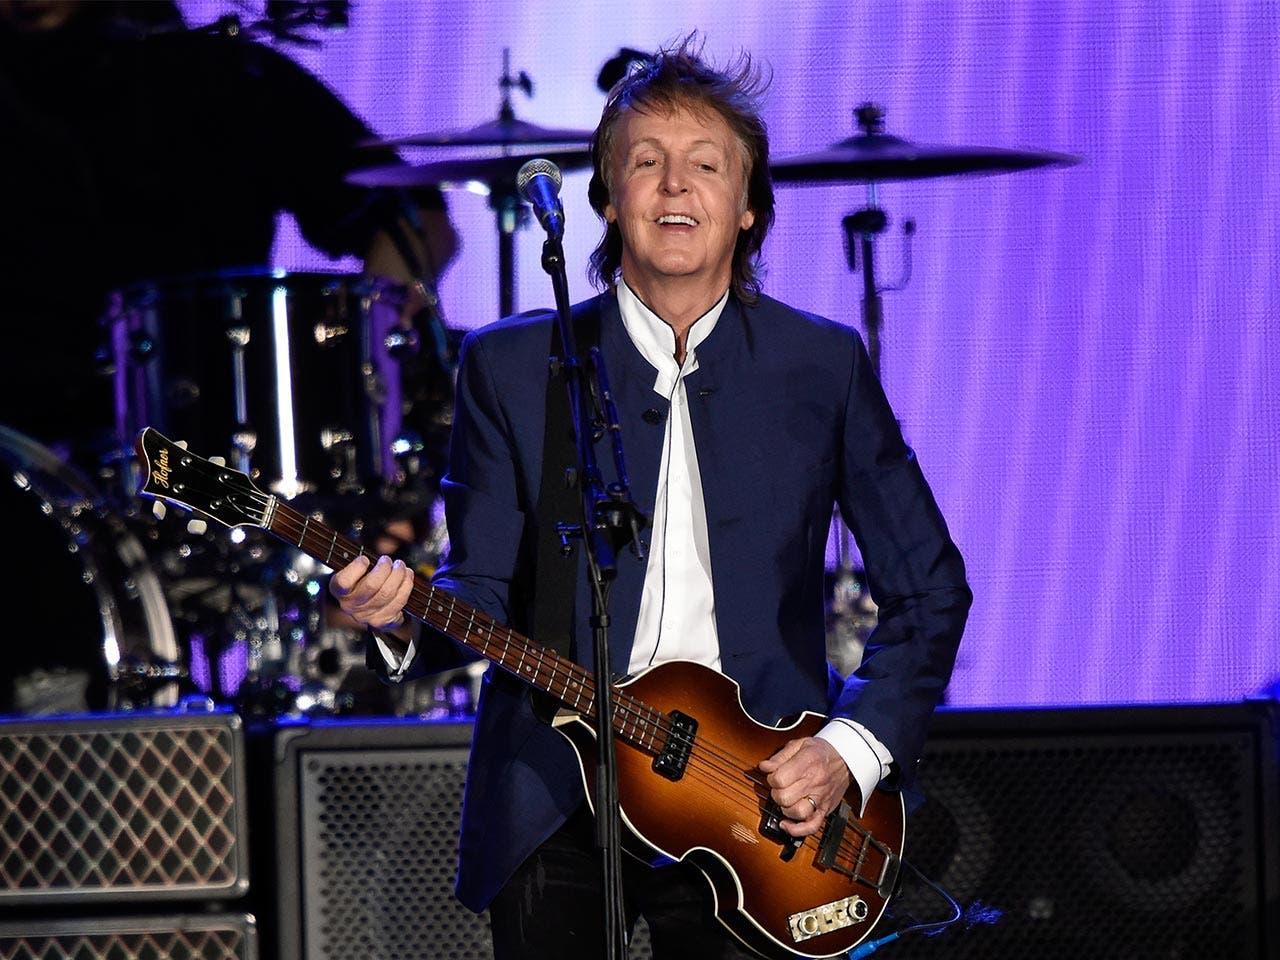 Paul McCartney | Kevin Mazur/Getty Images